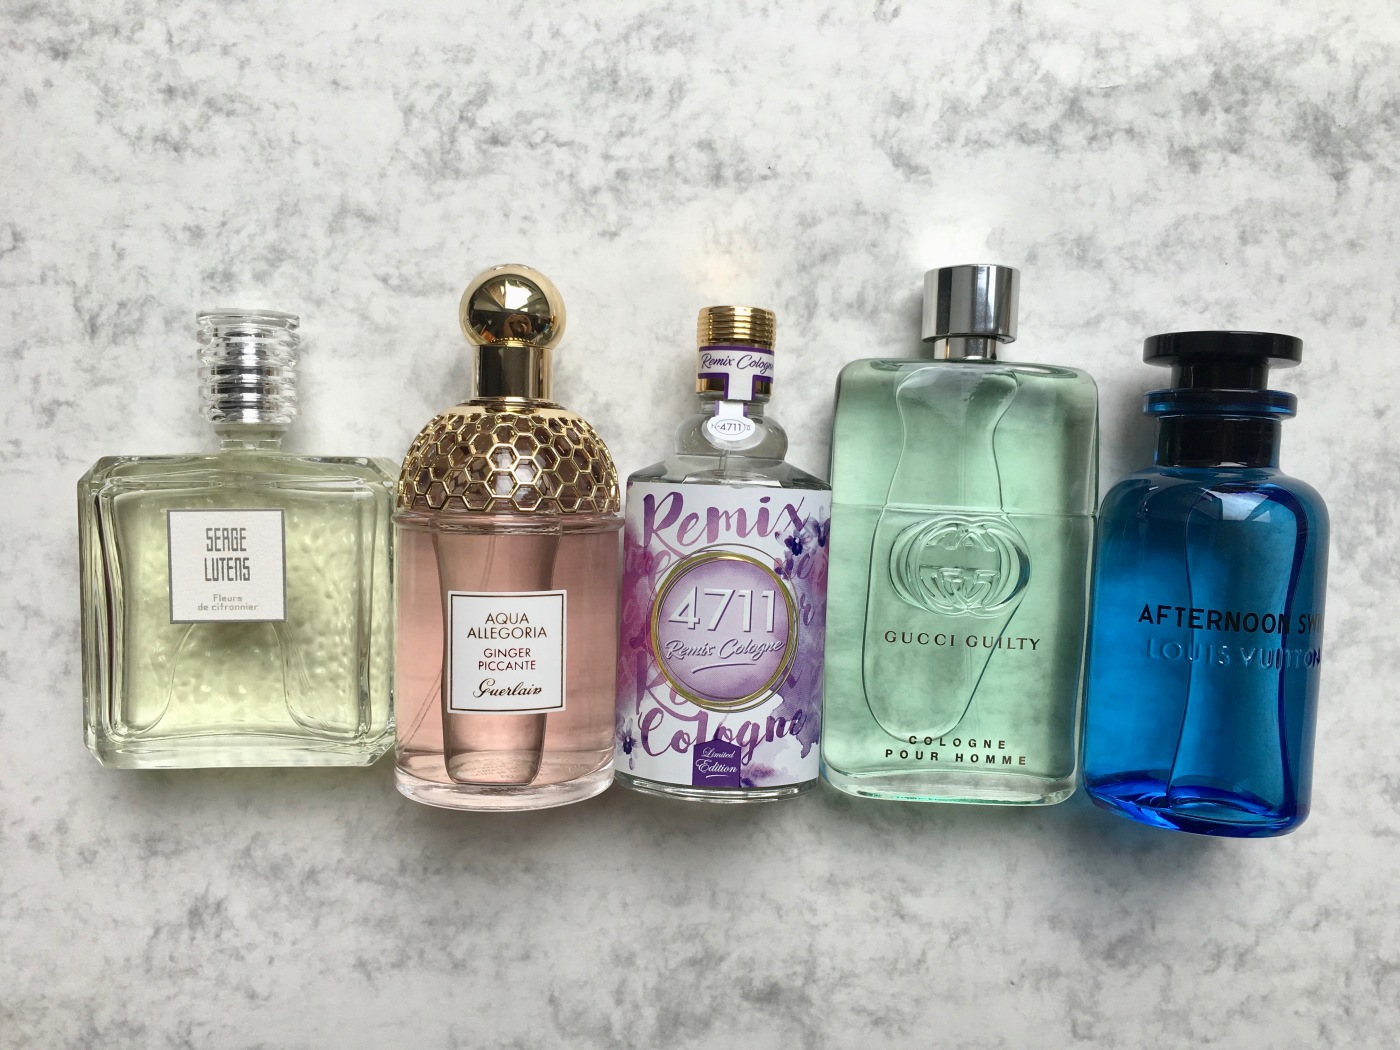 eau de cologne remix cologne 4711 aqua allegoria ginger piccante guerlain serge lutens fleurs de citronnier gucci guilty cologne afternoon swim louis vuitton